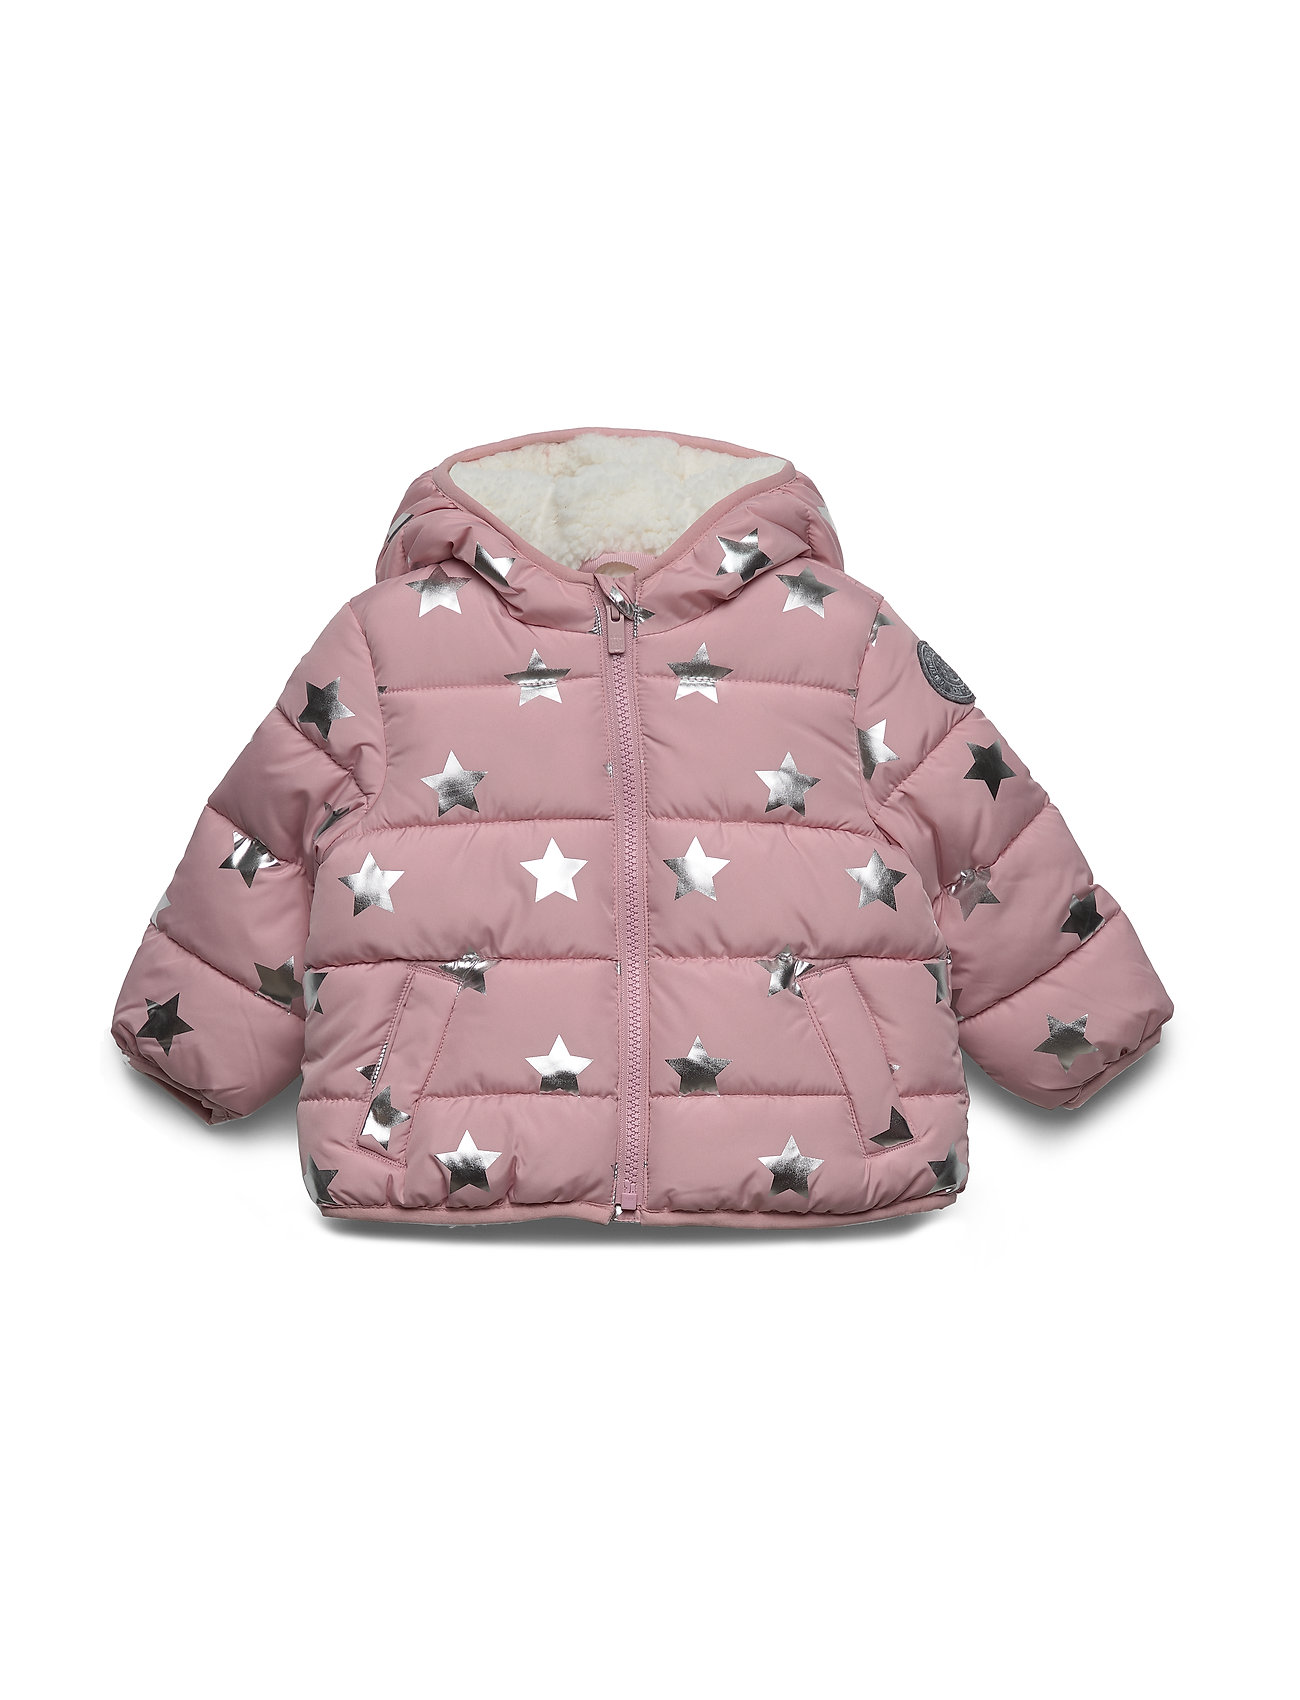 GAP Toddler ColdControl Max Puffer - PINK STARS